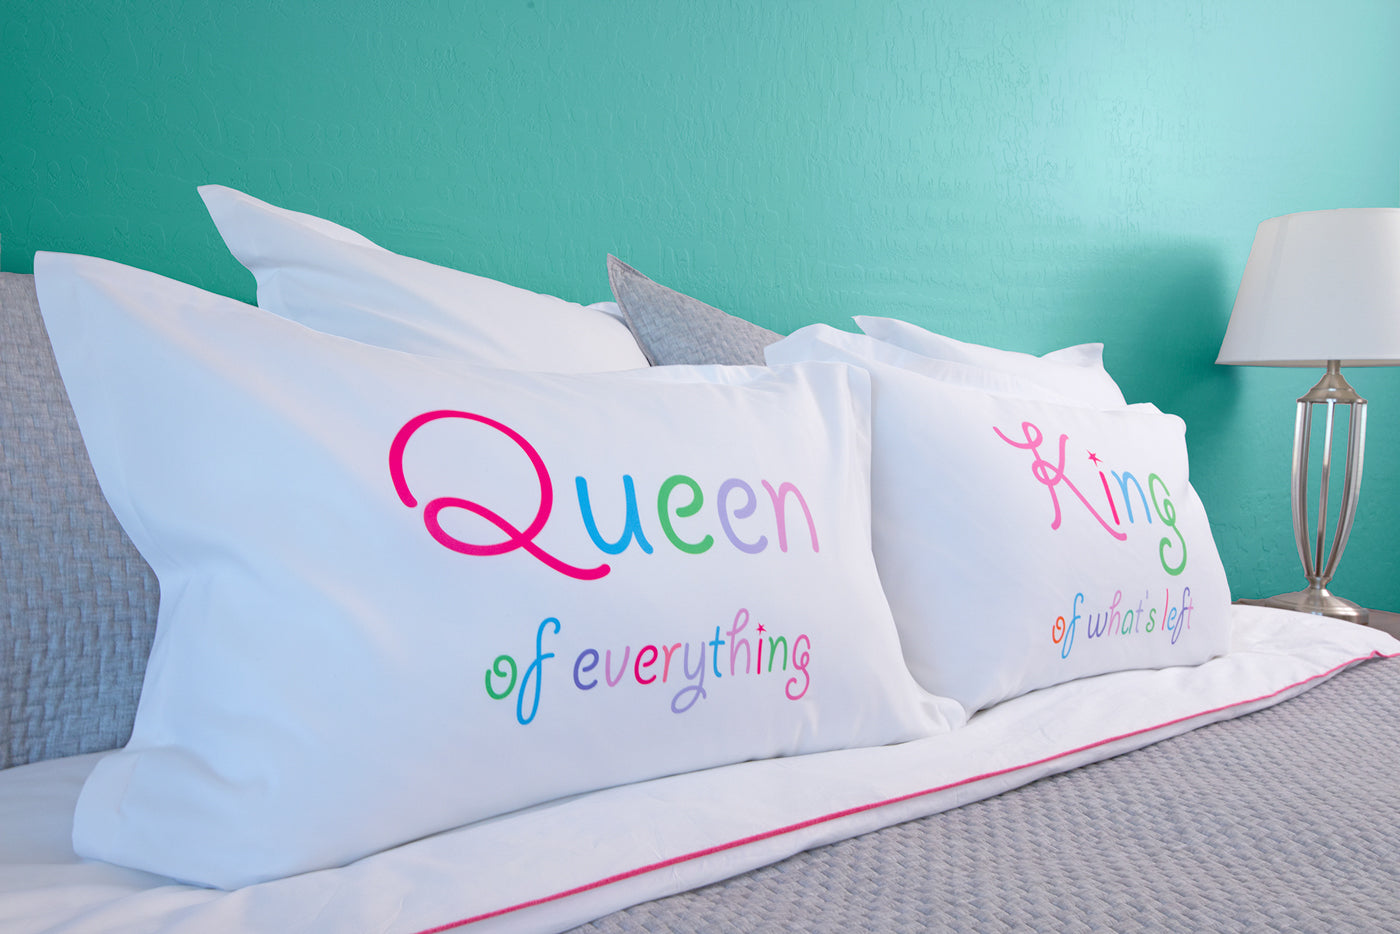 Queen Of Everything, King Of What's Left - His & Hers Pillowcase Collection-Di Lewis